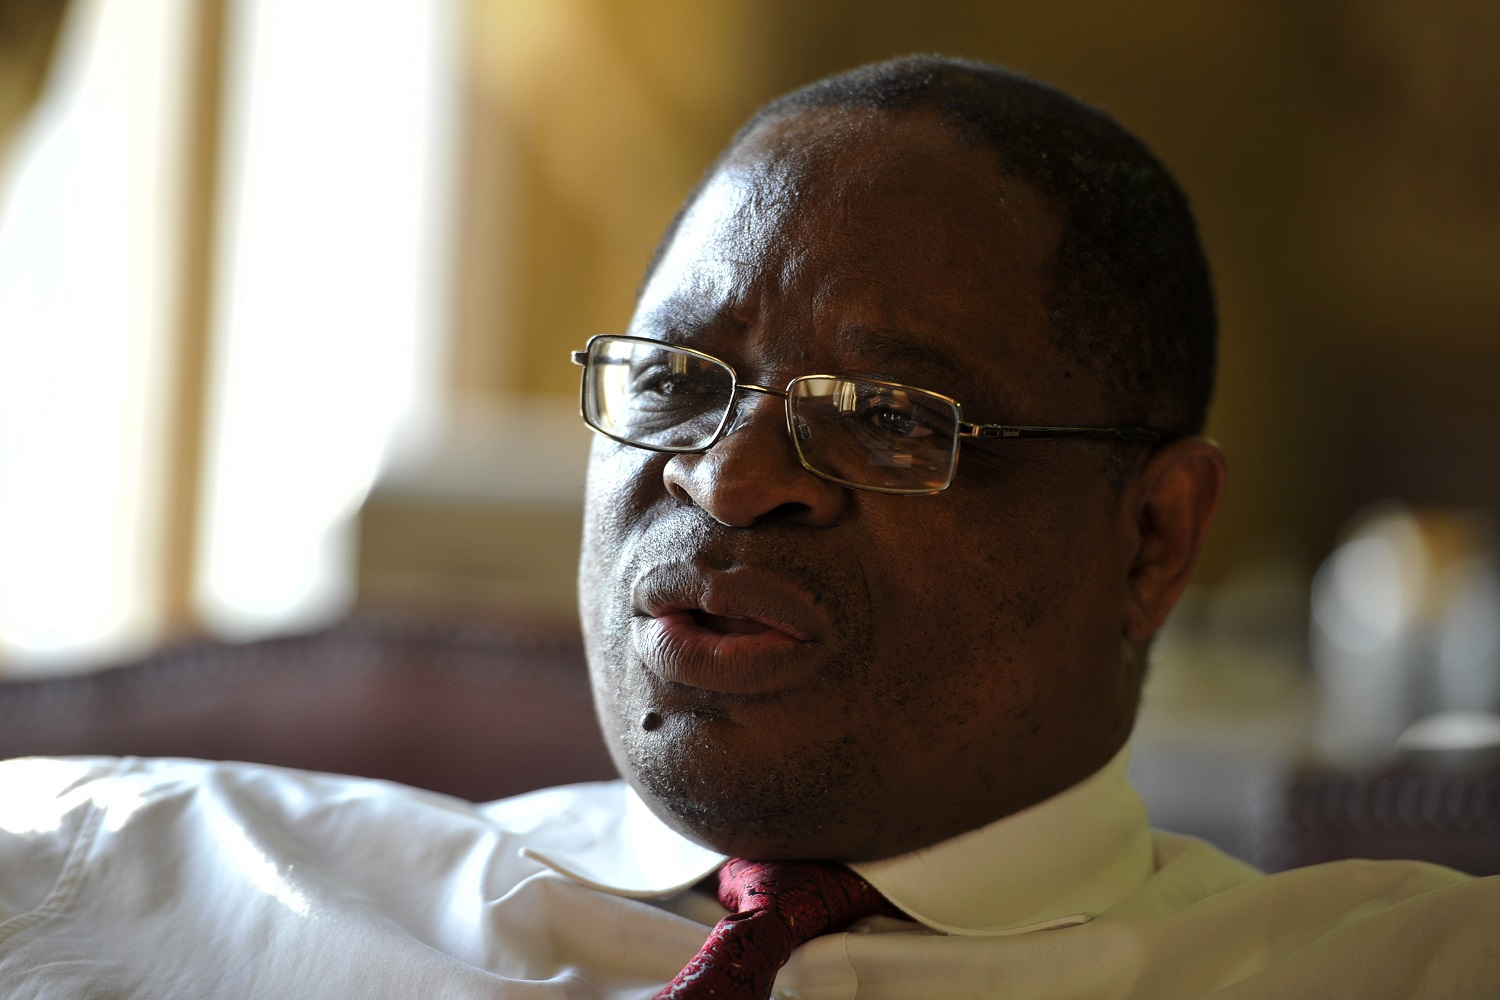 File: Deputy Judge President Raymond Zondo - head of the commission of inquiry into state capture, corruption and fraud in the public sector - has denied DA's request to have access to witnesses.